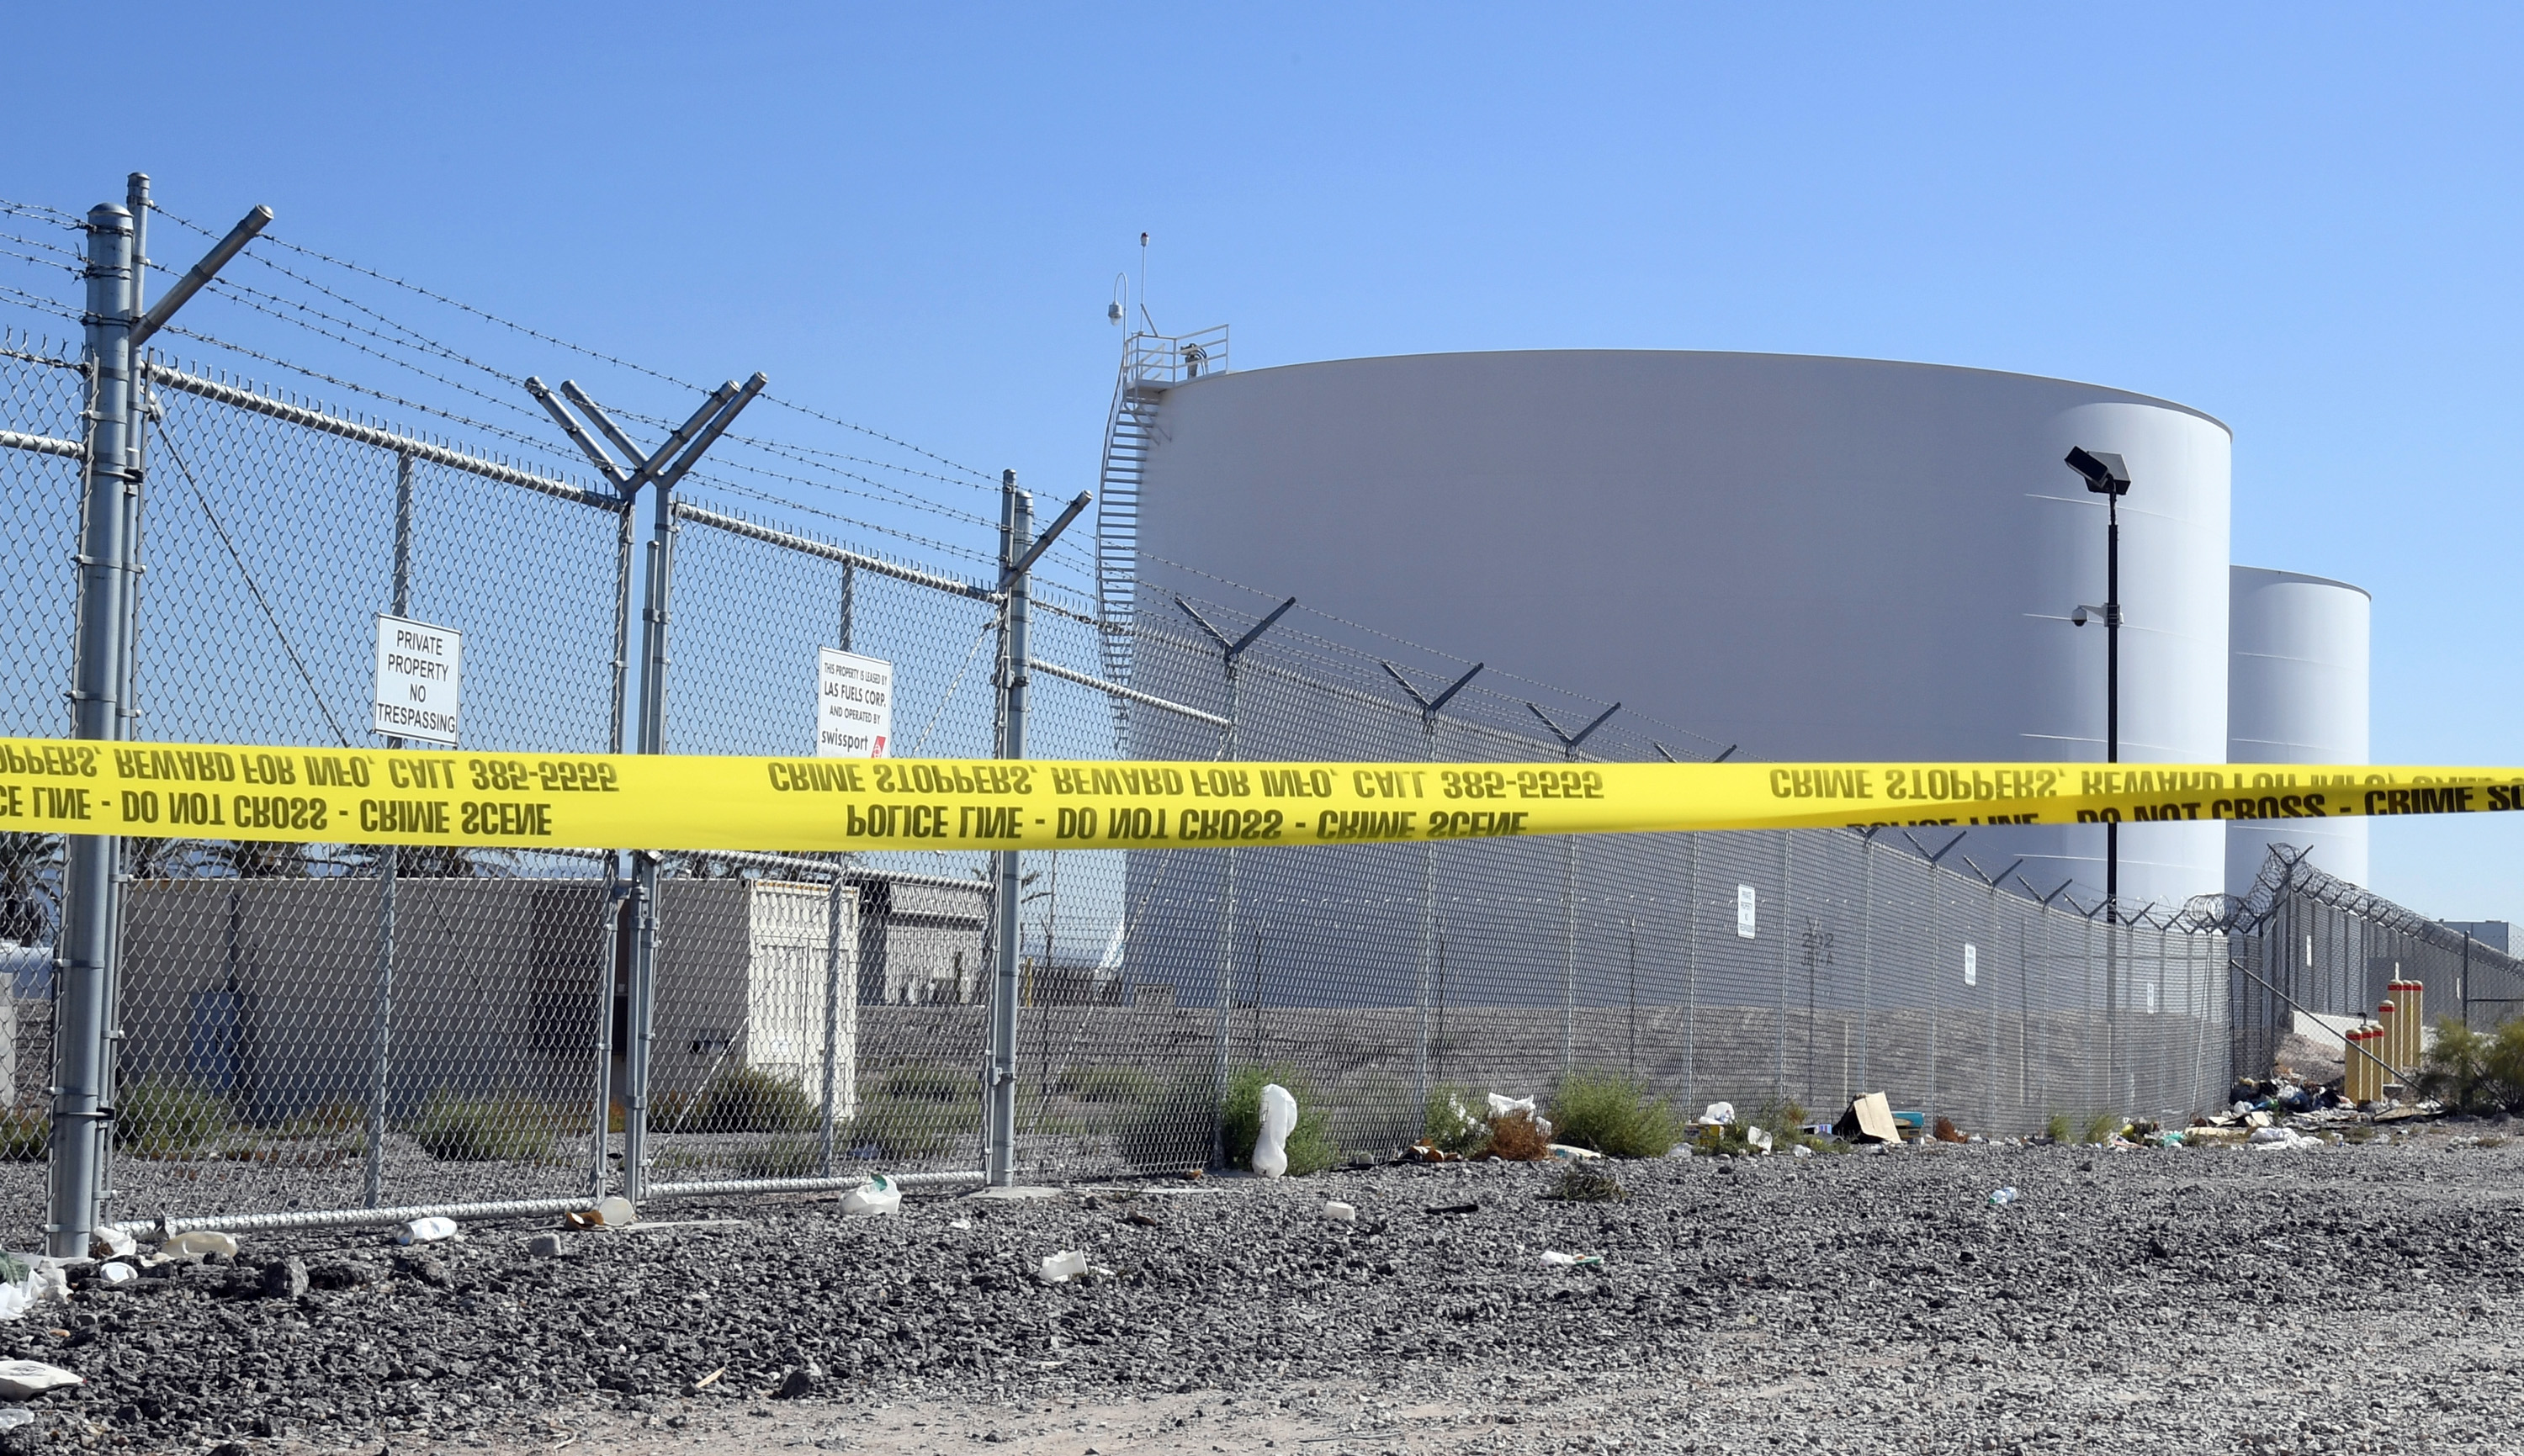 Jet fuel tanks just east of the Las Vegas Village, site of the Route 91 Harvest country music festival, that were targeted by gunman Stephen Paddock during Sunday's mass shooting are shown on Oct. 5, 2017.